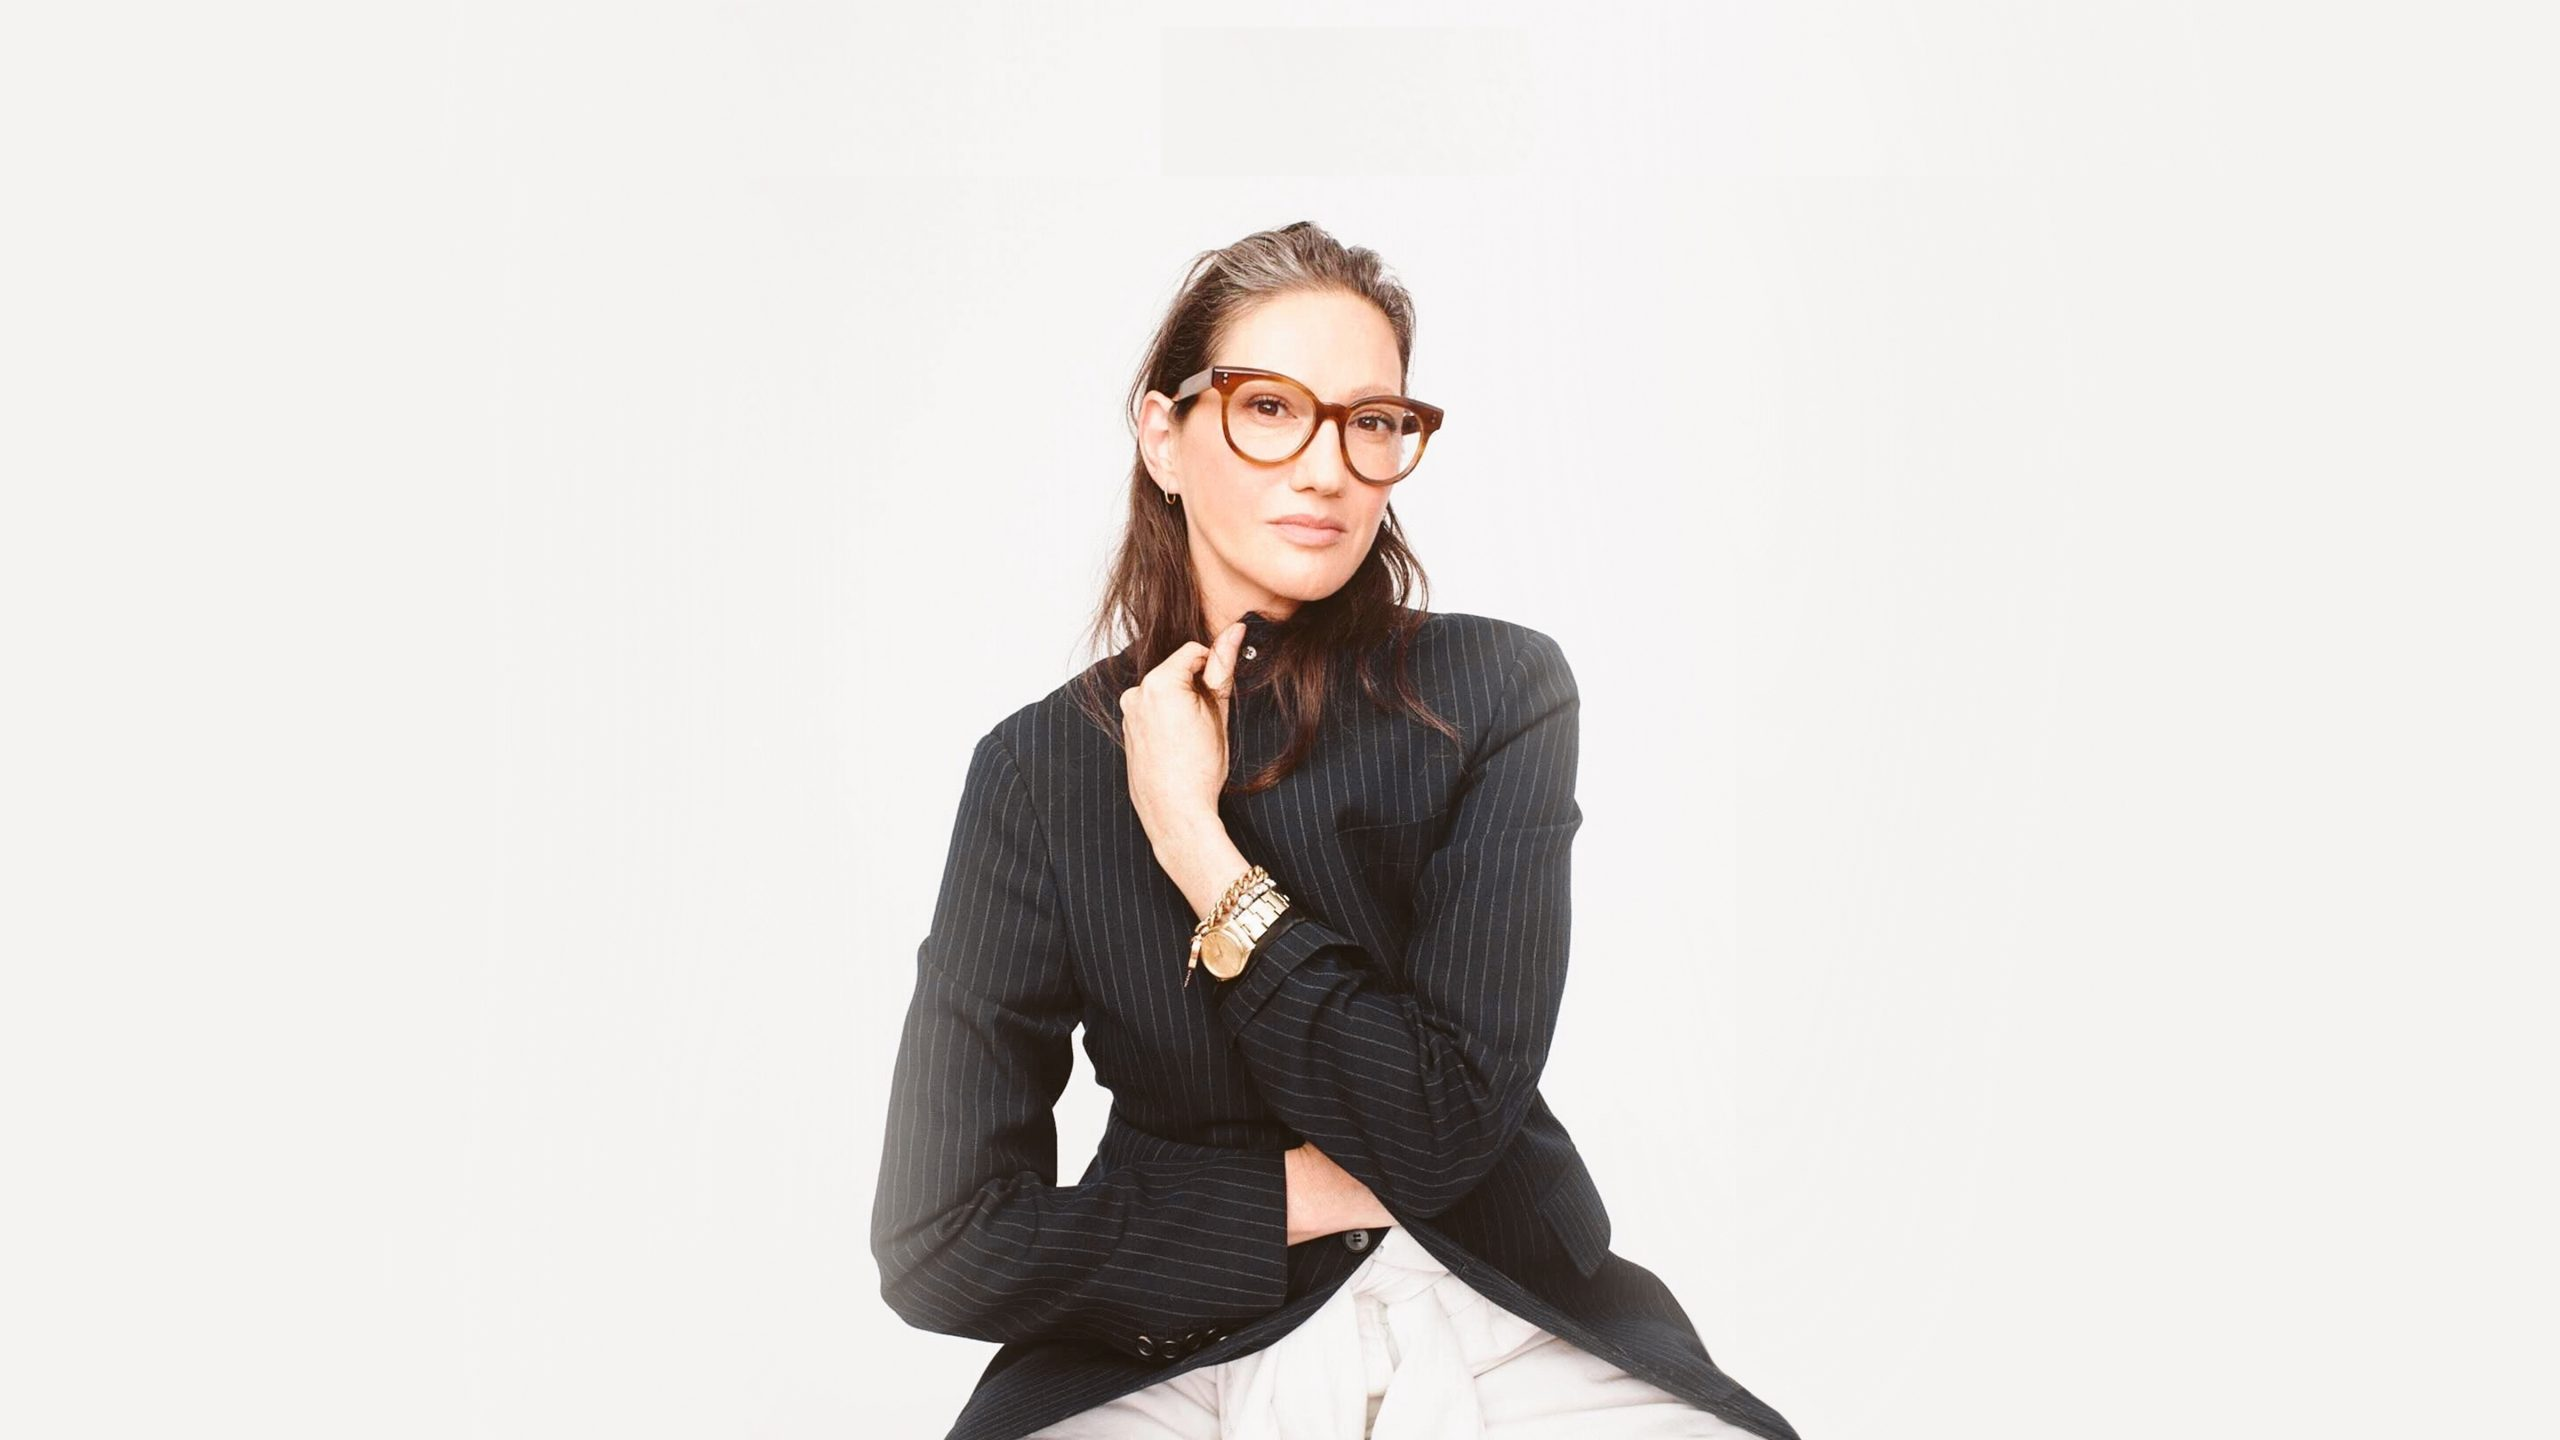 What's Next For Jenna Lyons?